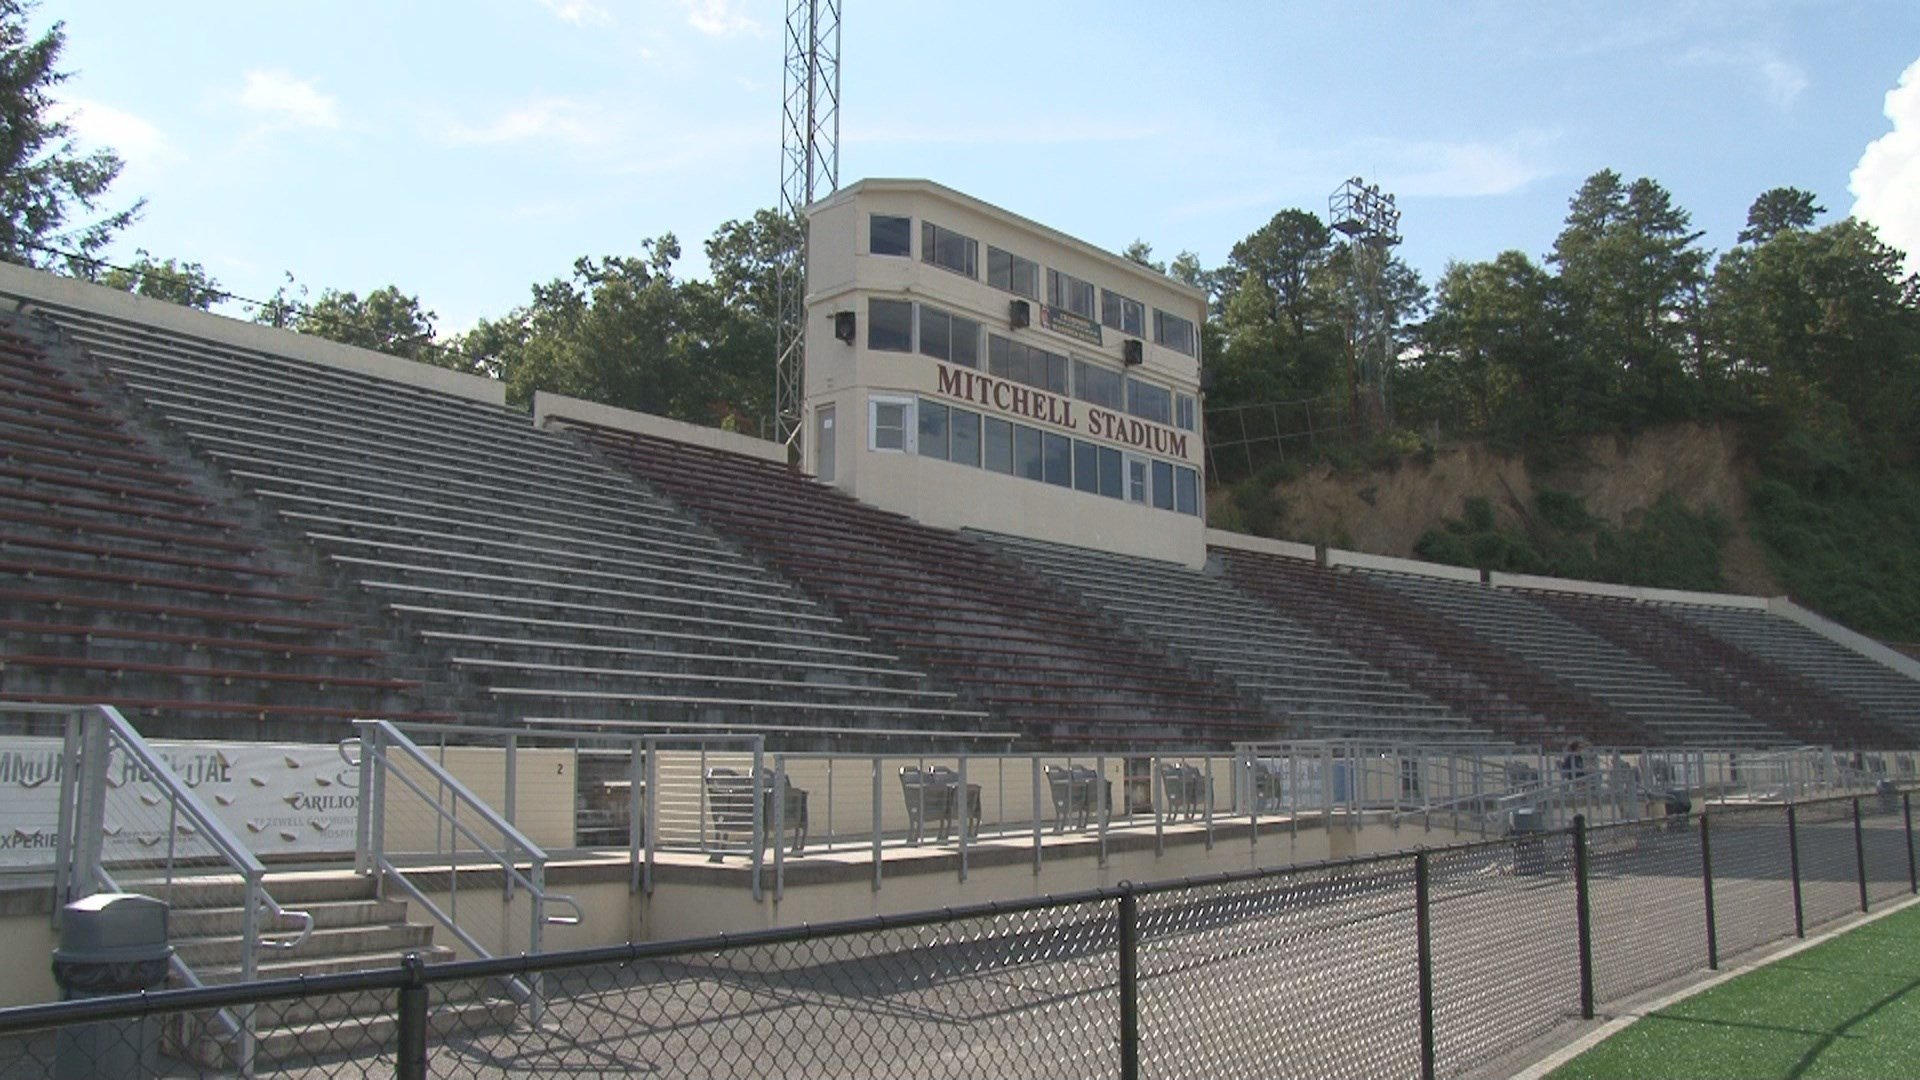 Mitchell Stadium, the host site for this Friday's Bluefield-Graham rivalry game.